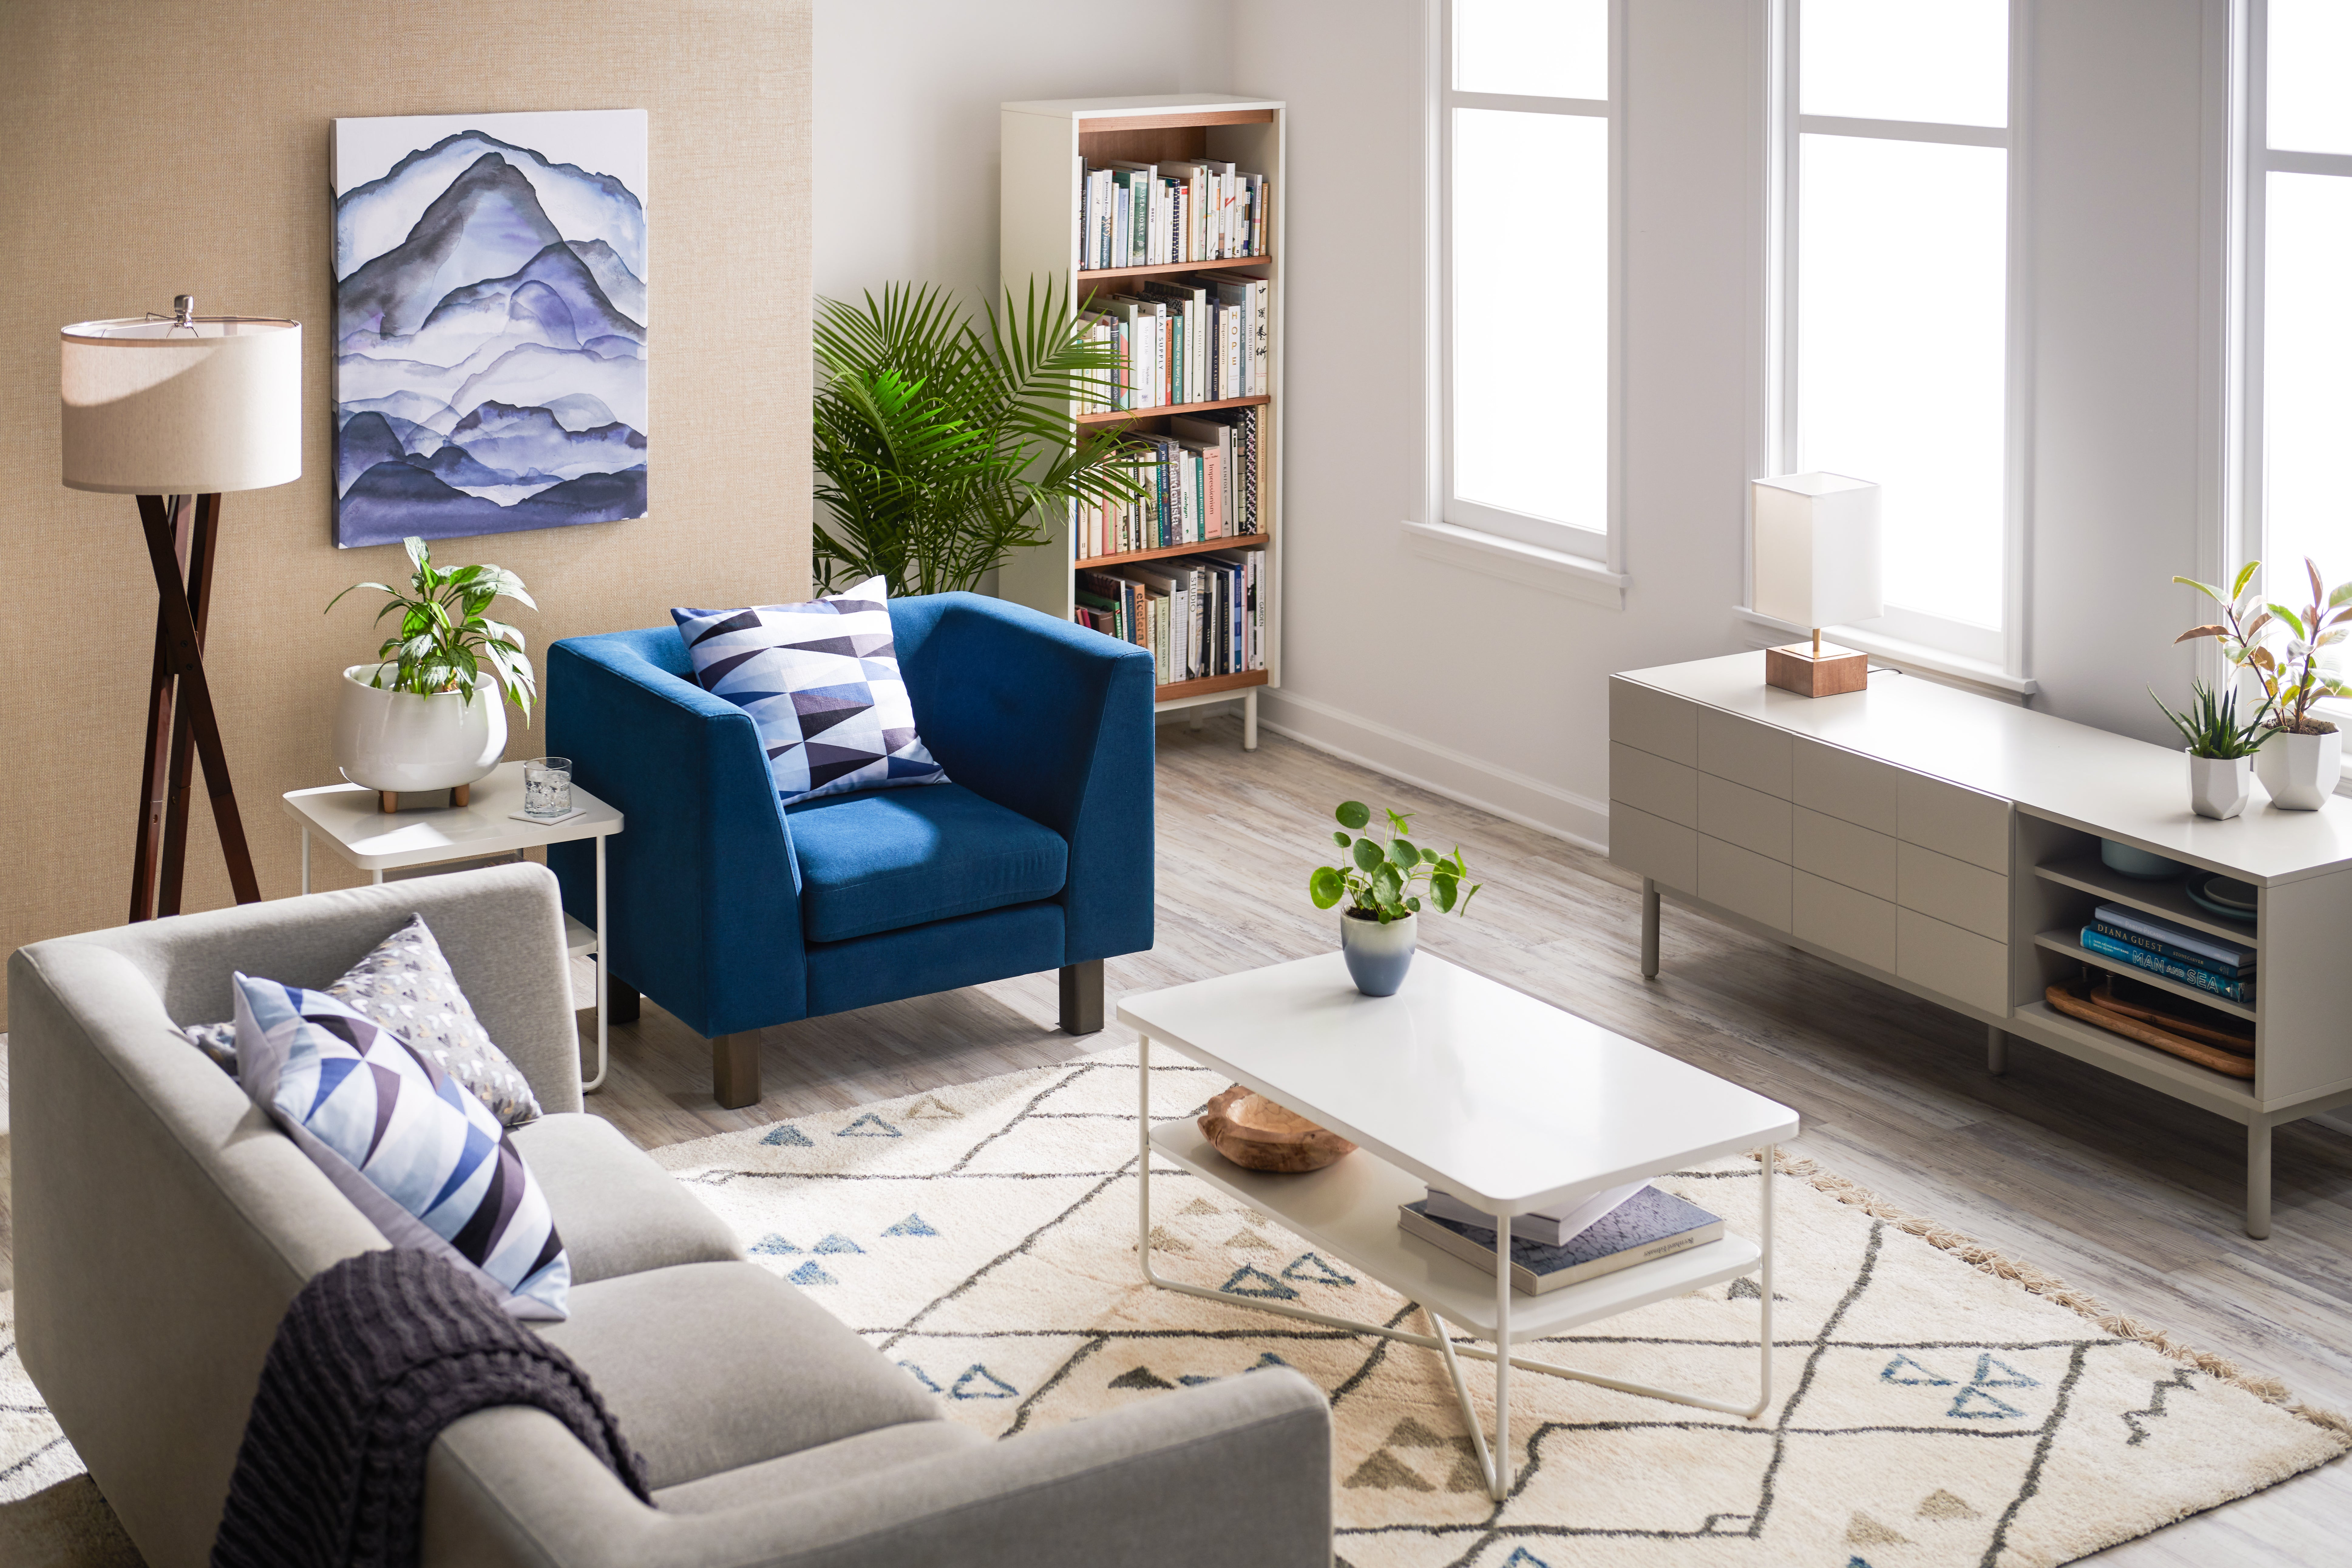 Walmart Modrn Scandi LIving build room2878_v11